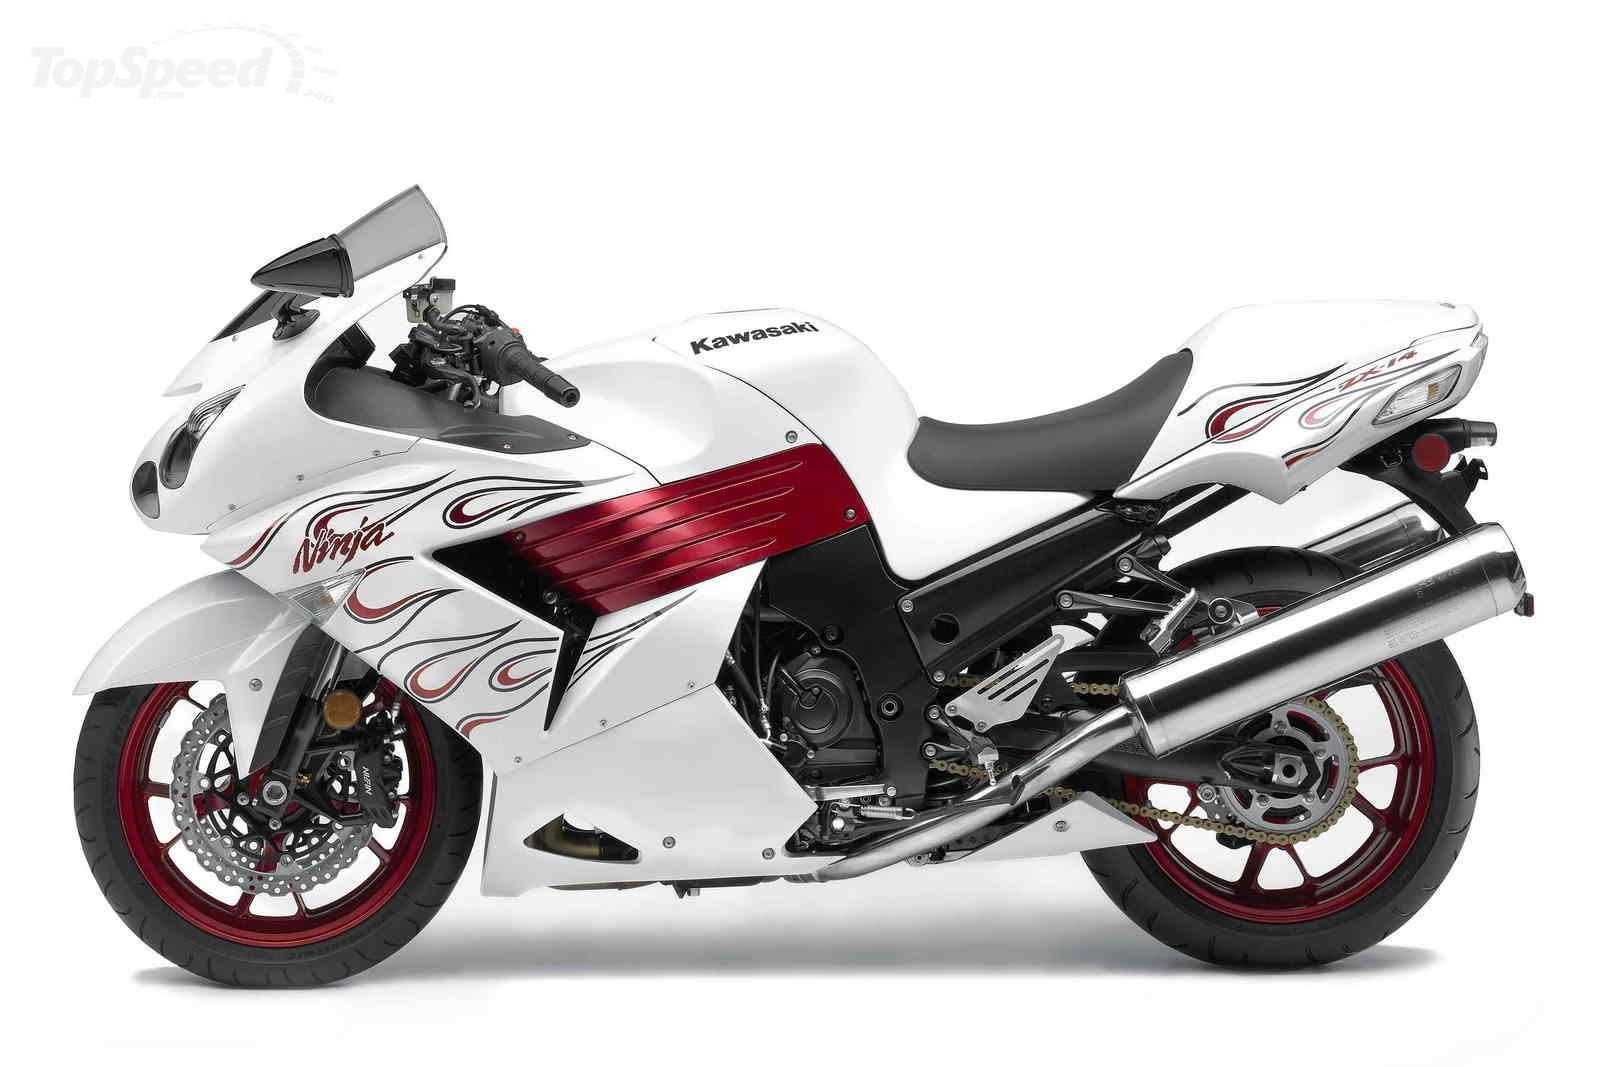 Cbr500r Wiring Diagram Get Free Image About Wiring Diagram